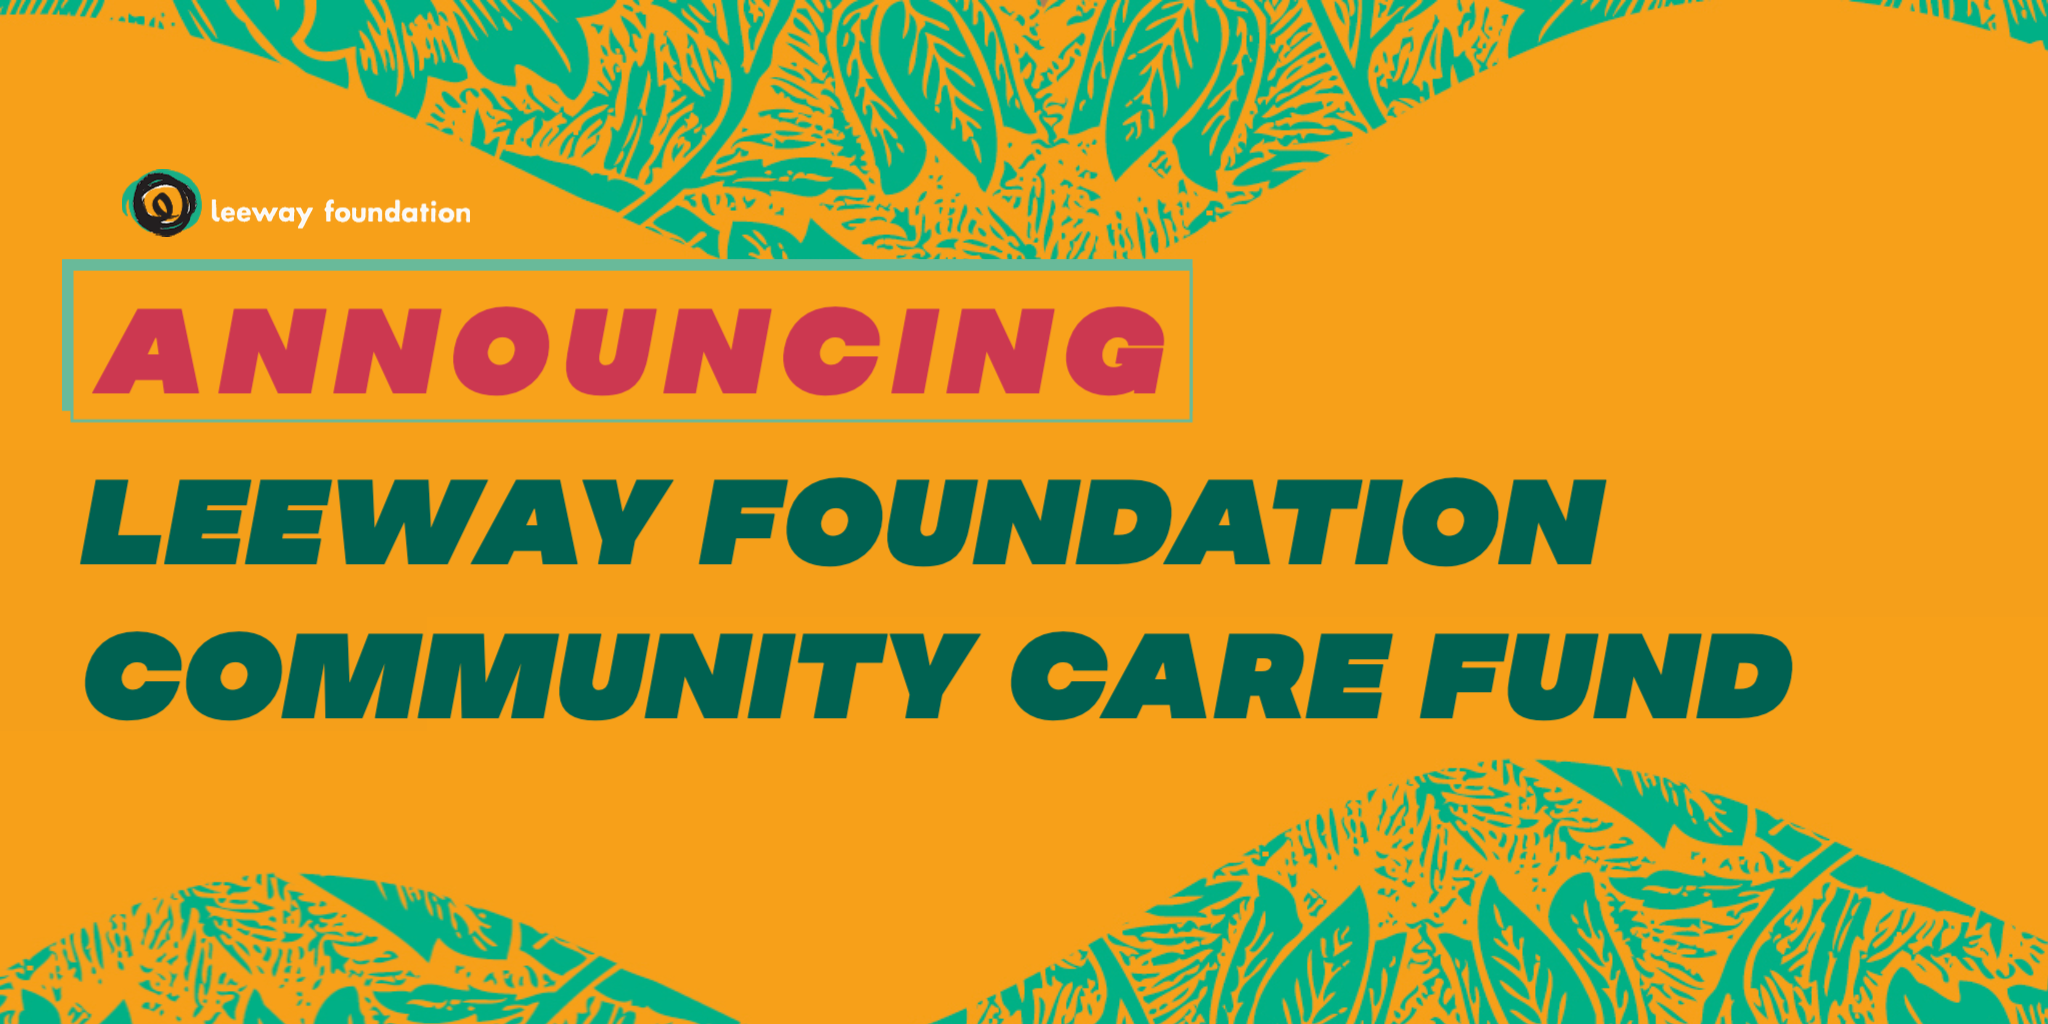 Leeway Foundation Community Care Fund